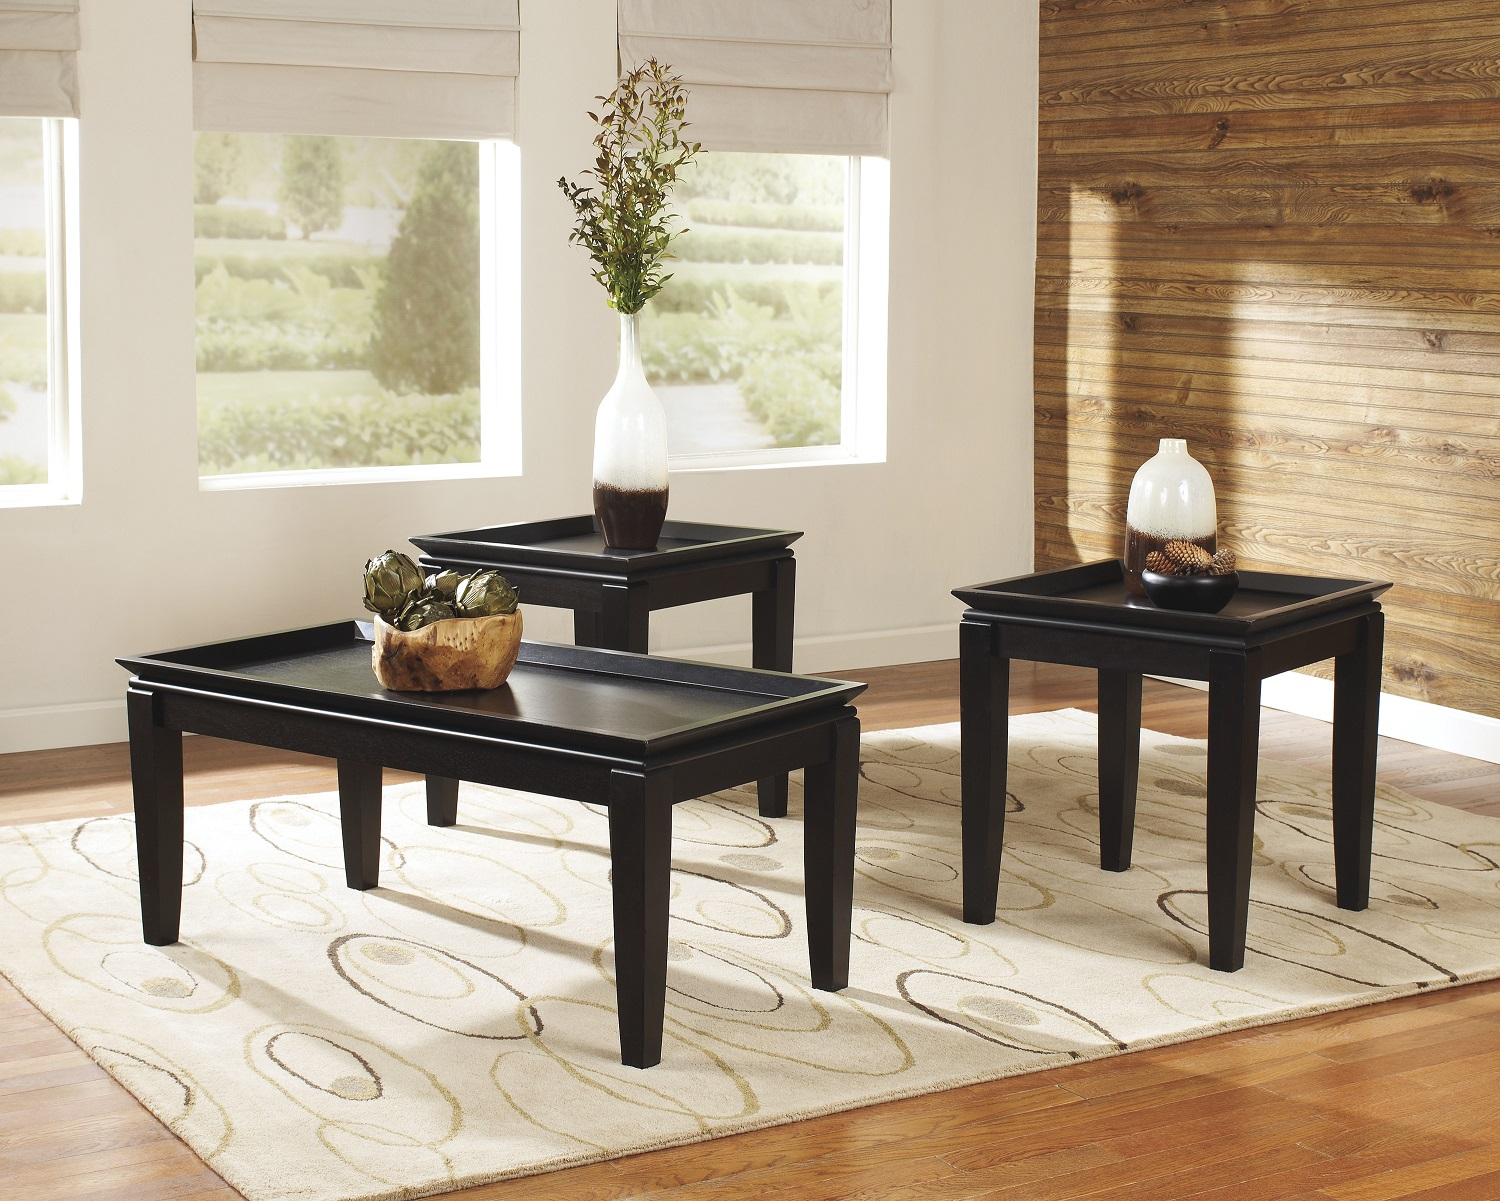 Black Coffee Table Set It Is As Simply As Removing The Handles If You Want To Make The Drawer Invisible (Image 6 of 10)